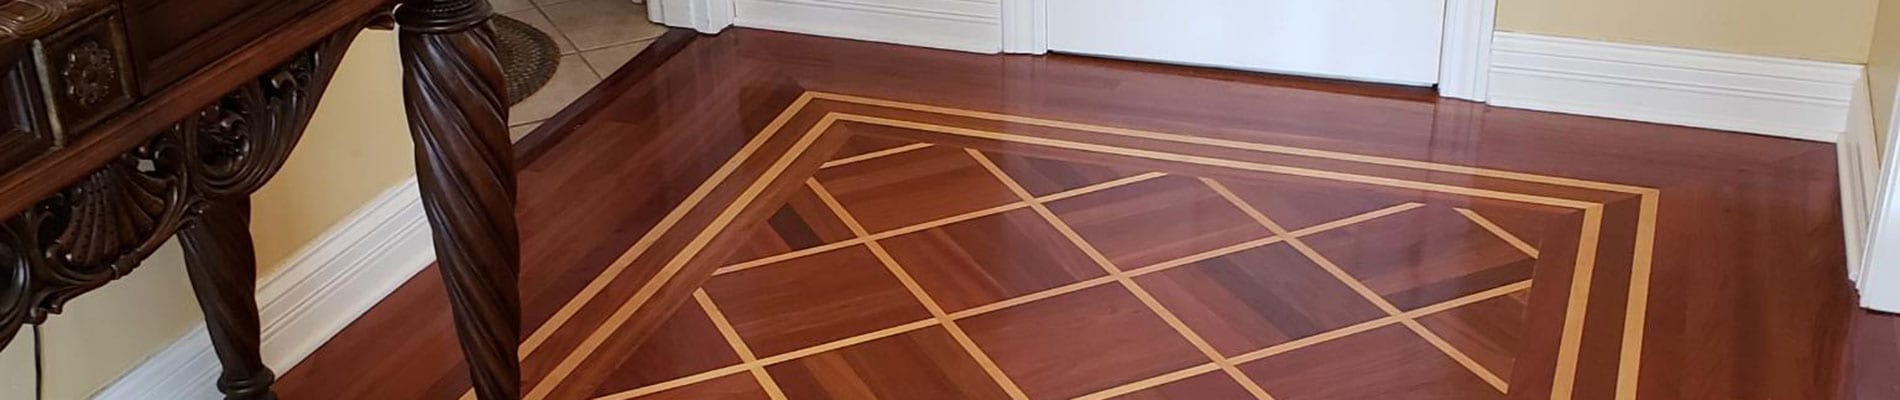 hardwood floors evansville in